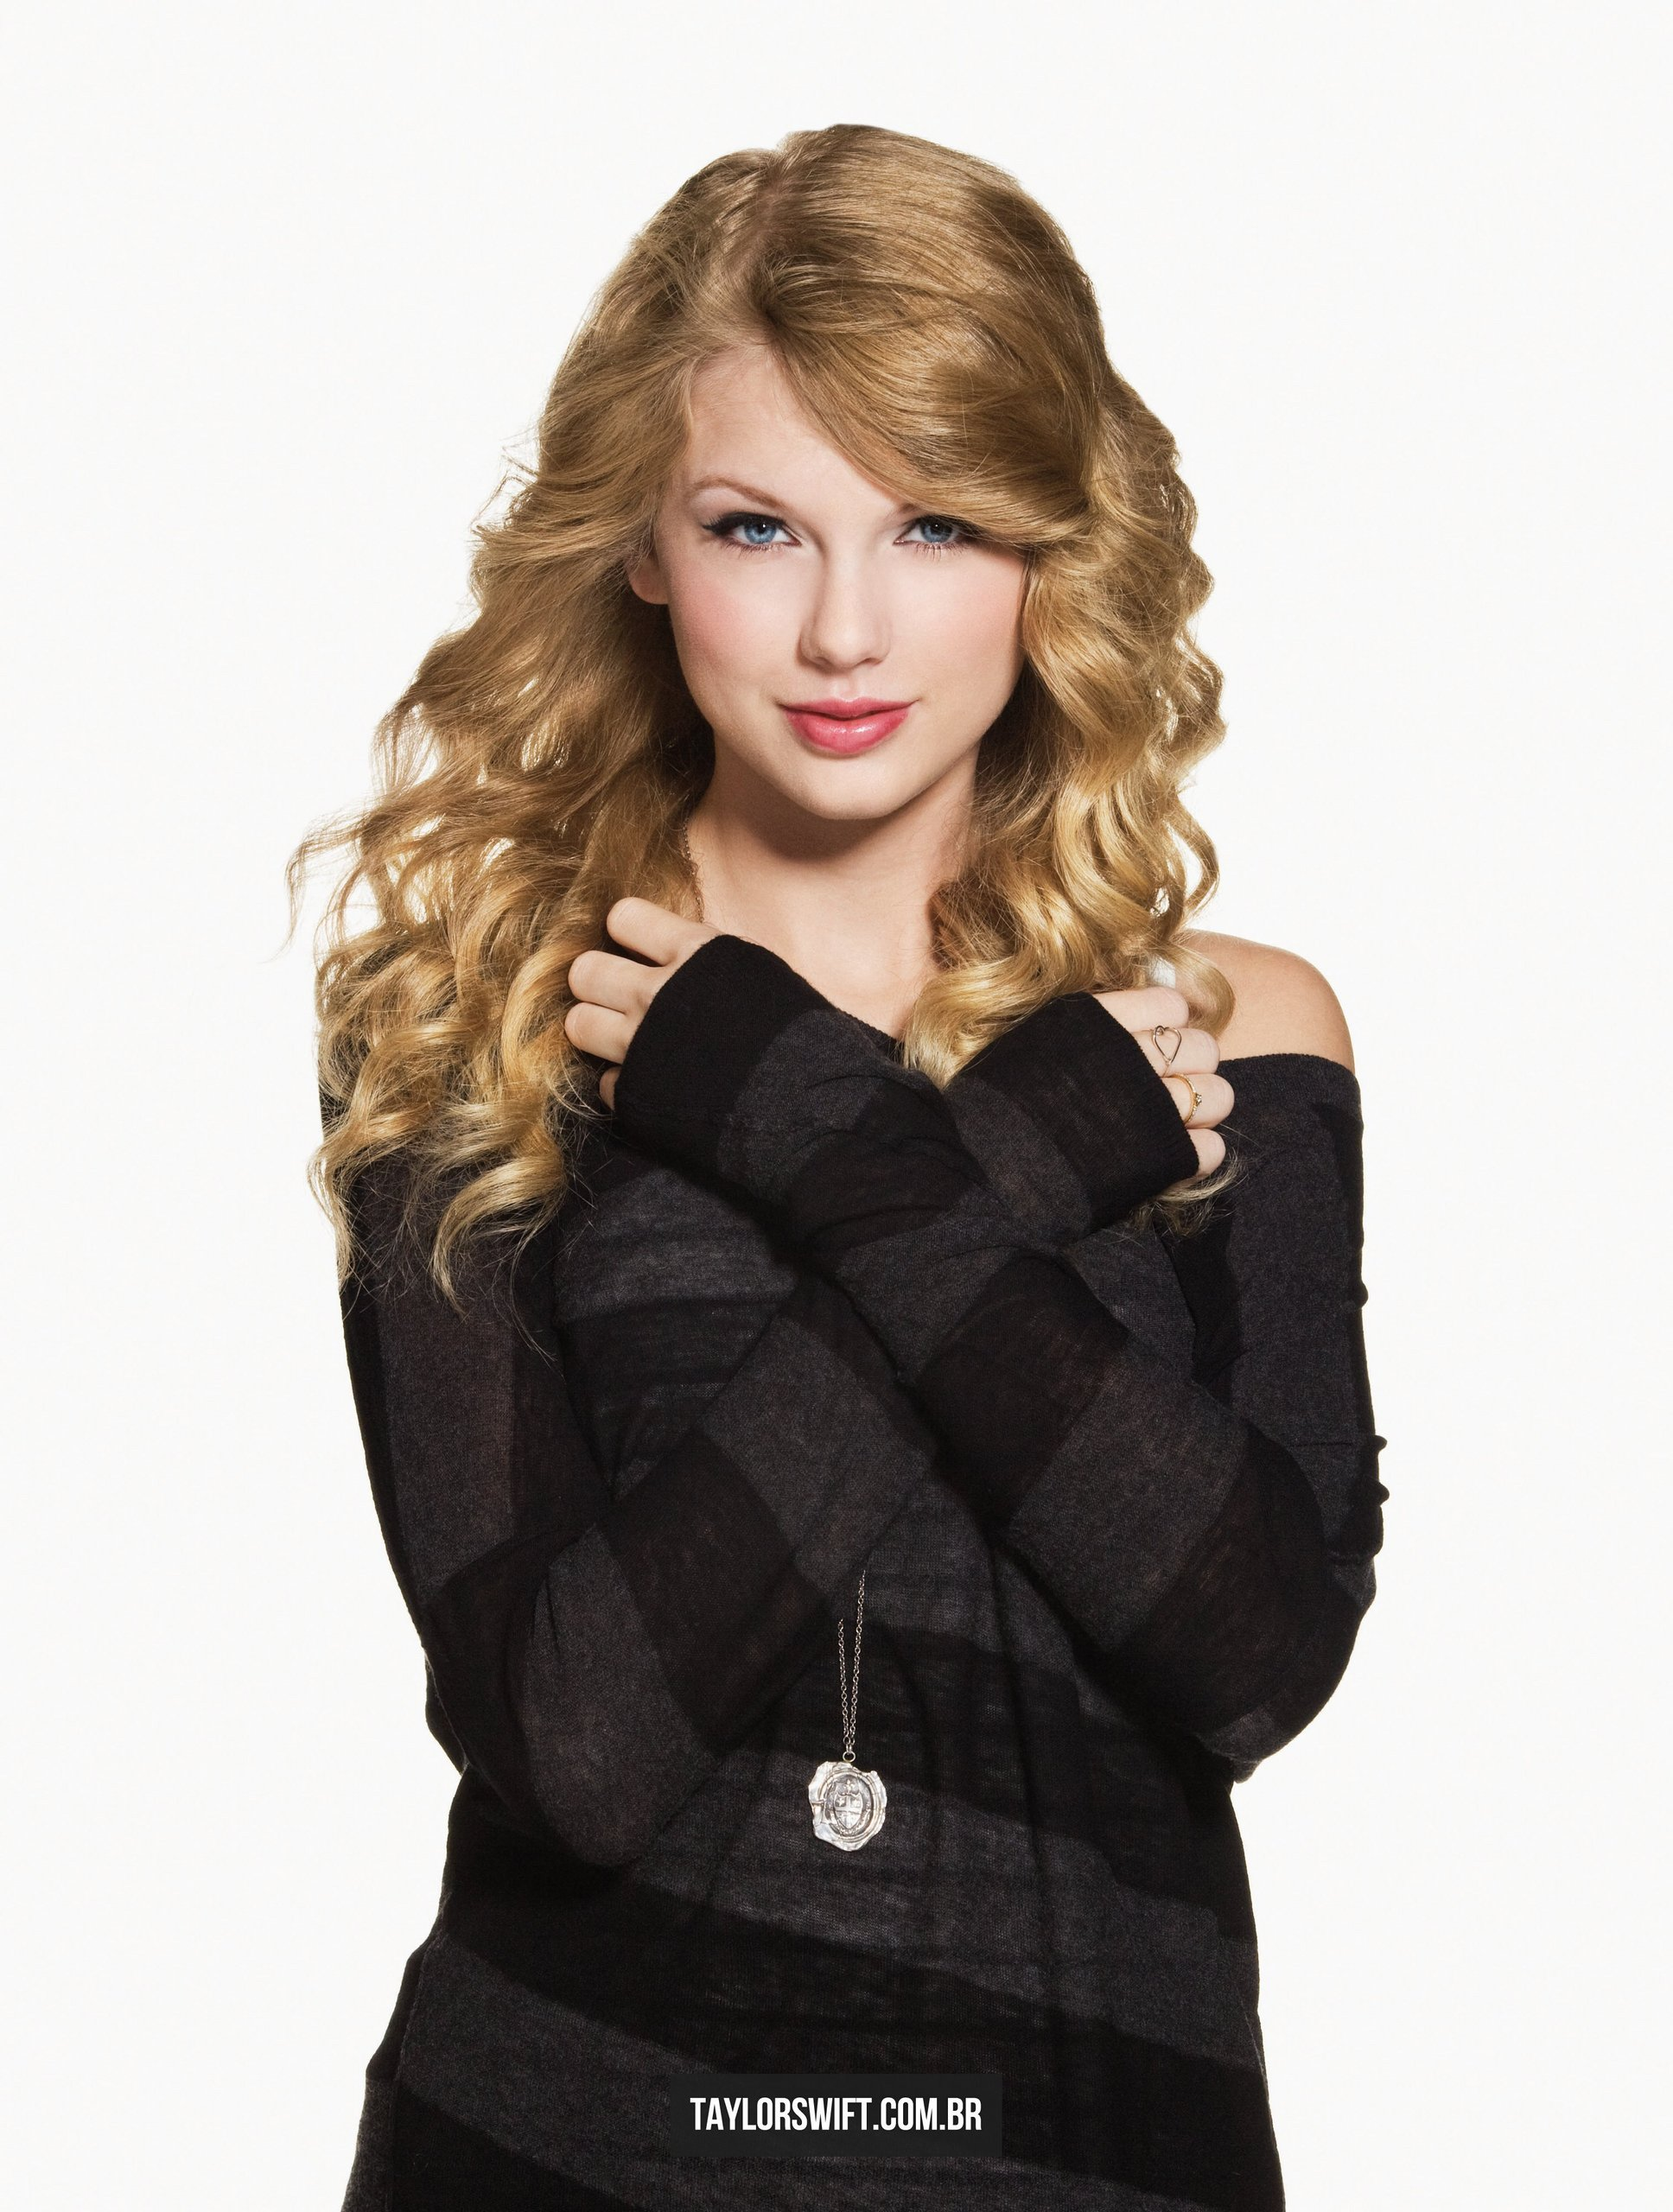 Taylor Swift Taylor swift - Country weekly photoshoot HQ